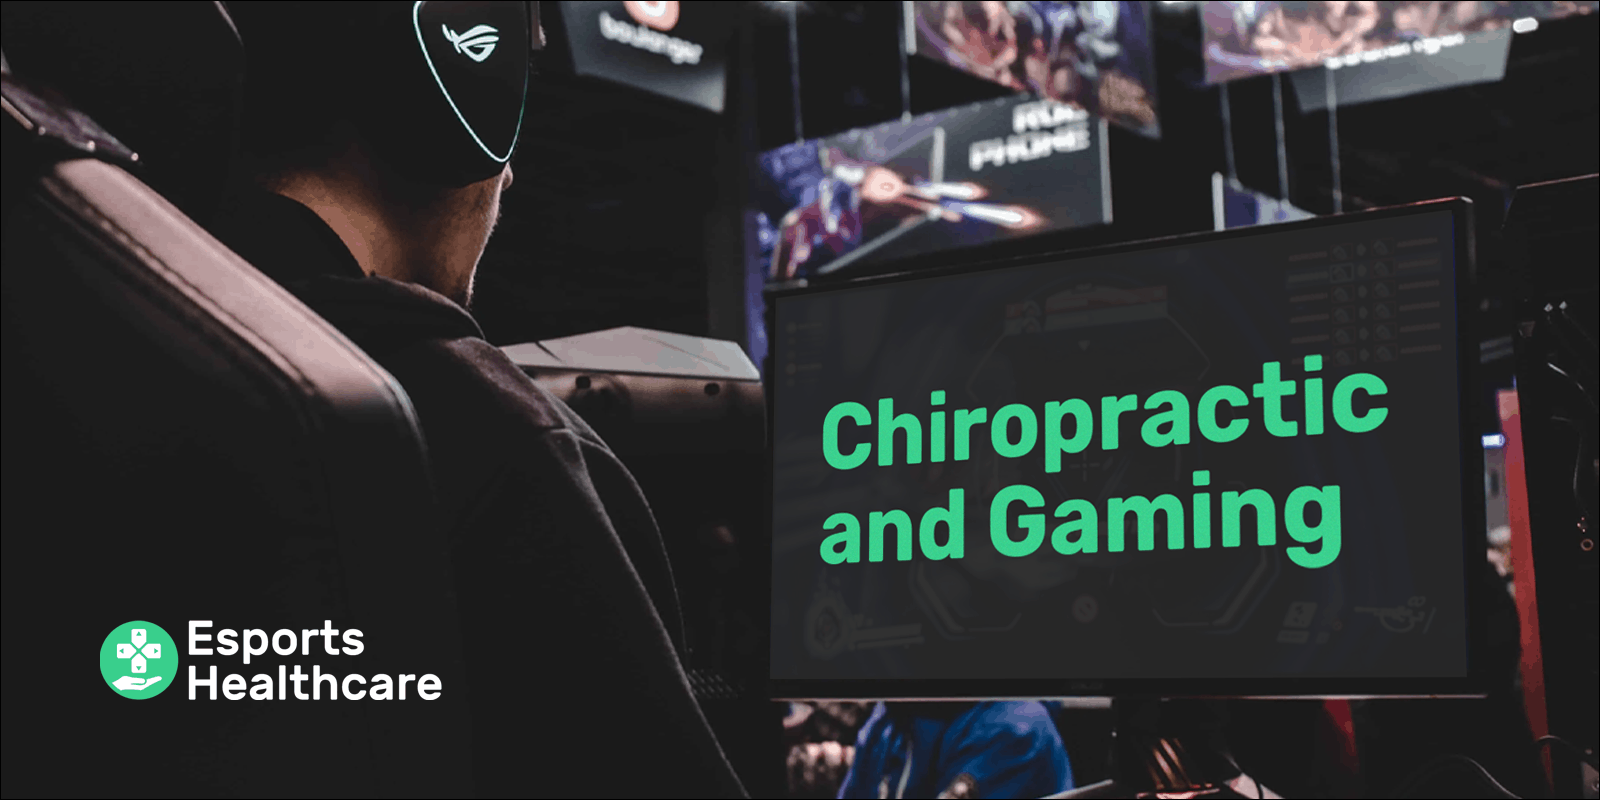 chiropractic and gaming